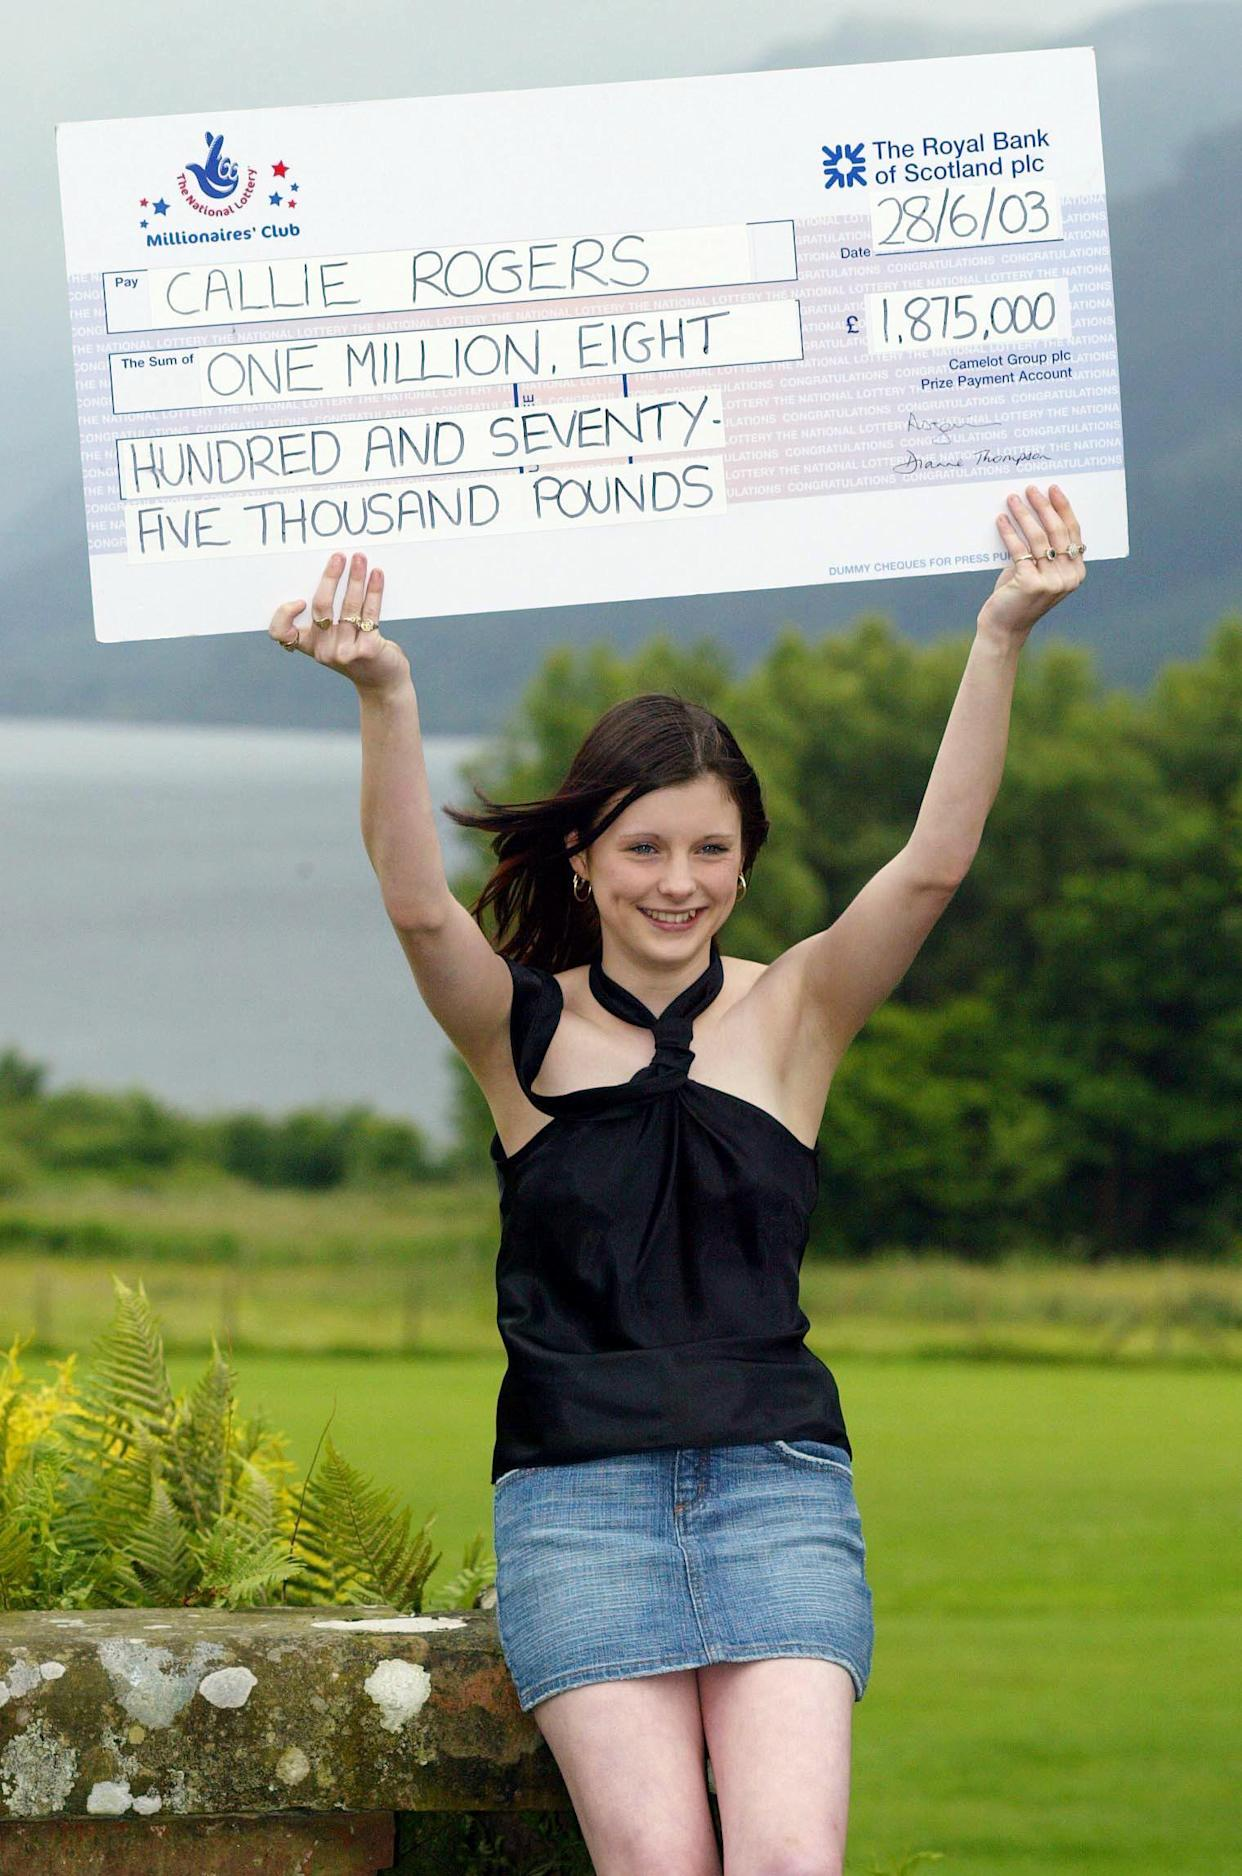 Sixteen-year-old, Callie Rogers from Cockermouth in Cumbria celebrates after winning   1.8 million on the National Lottery, becoming the second youngest jackpot winner.